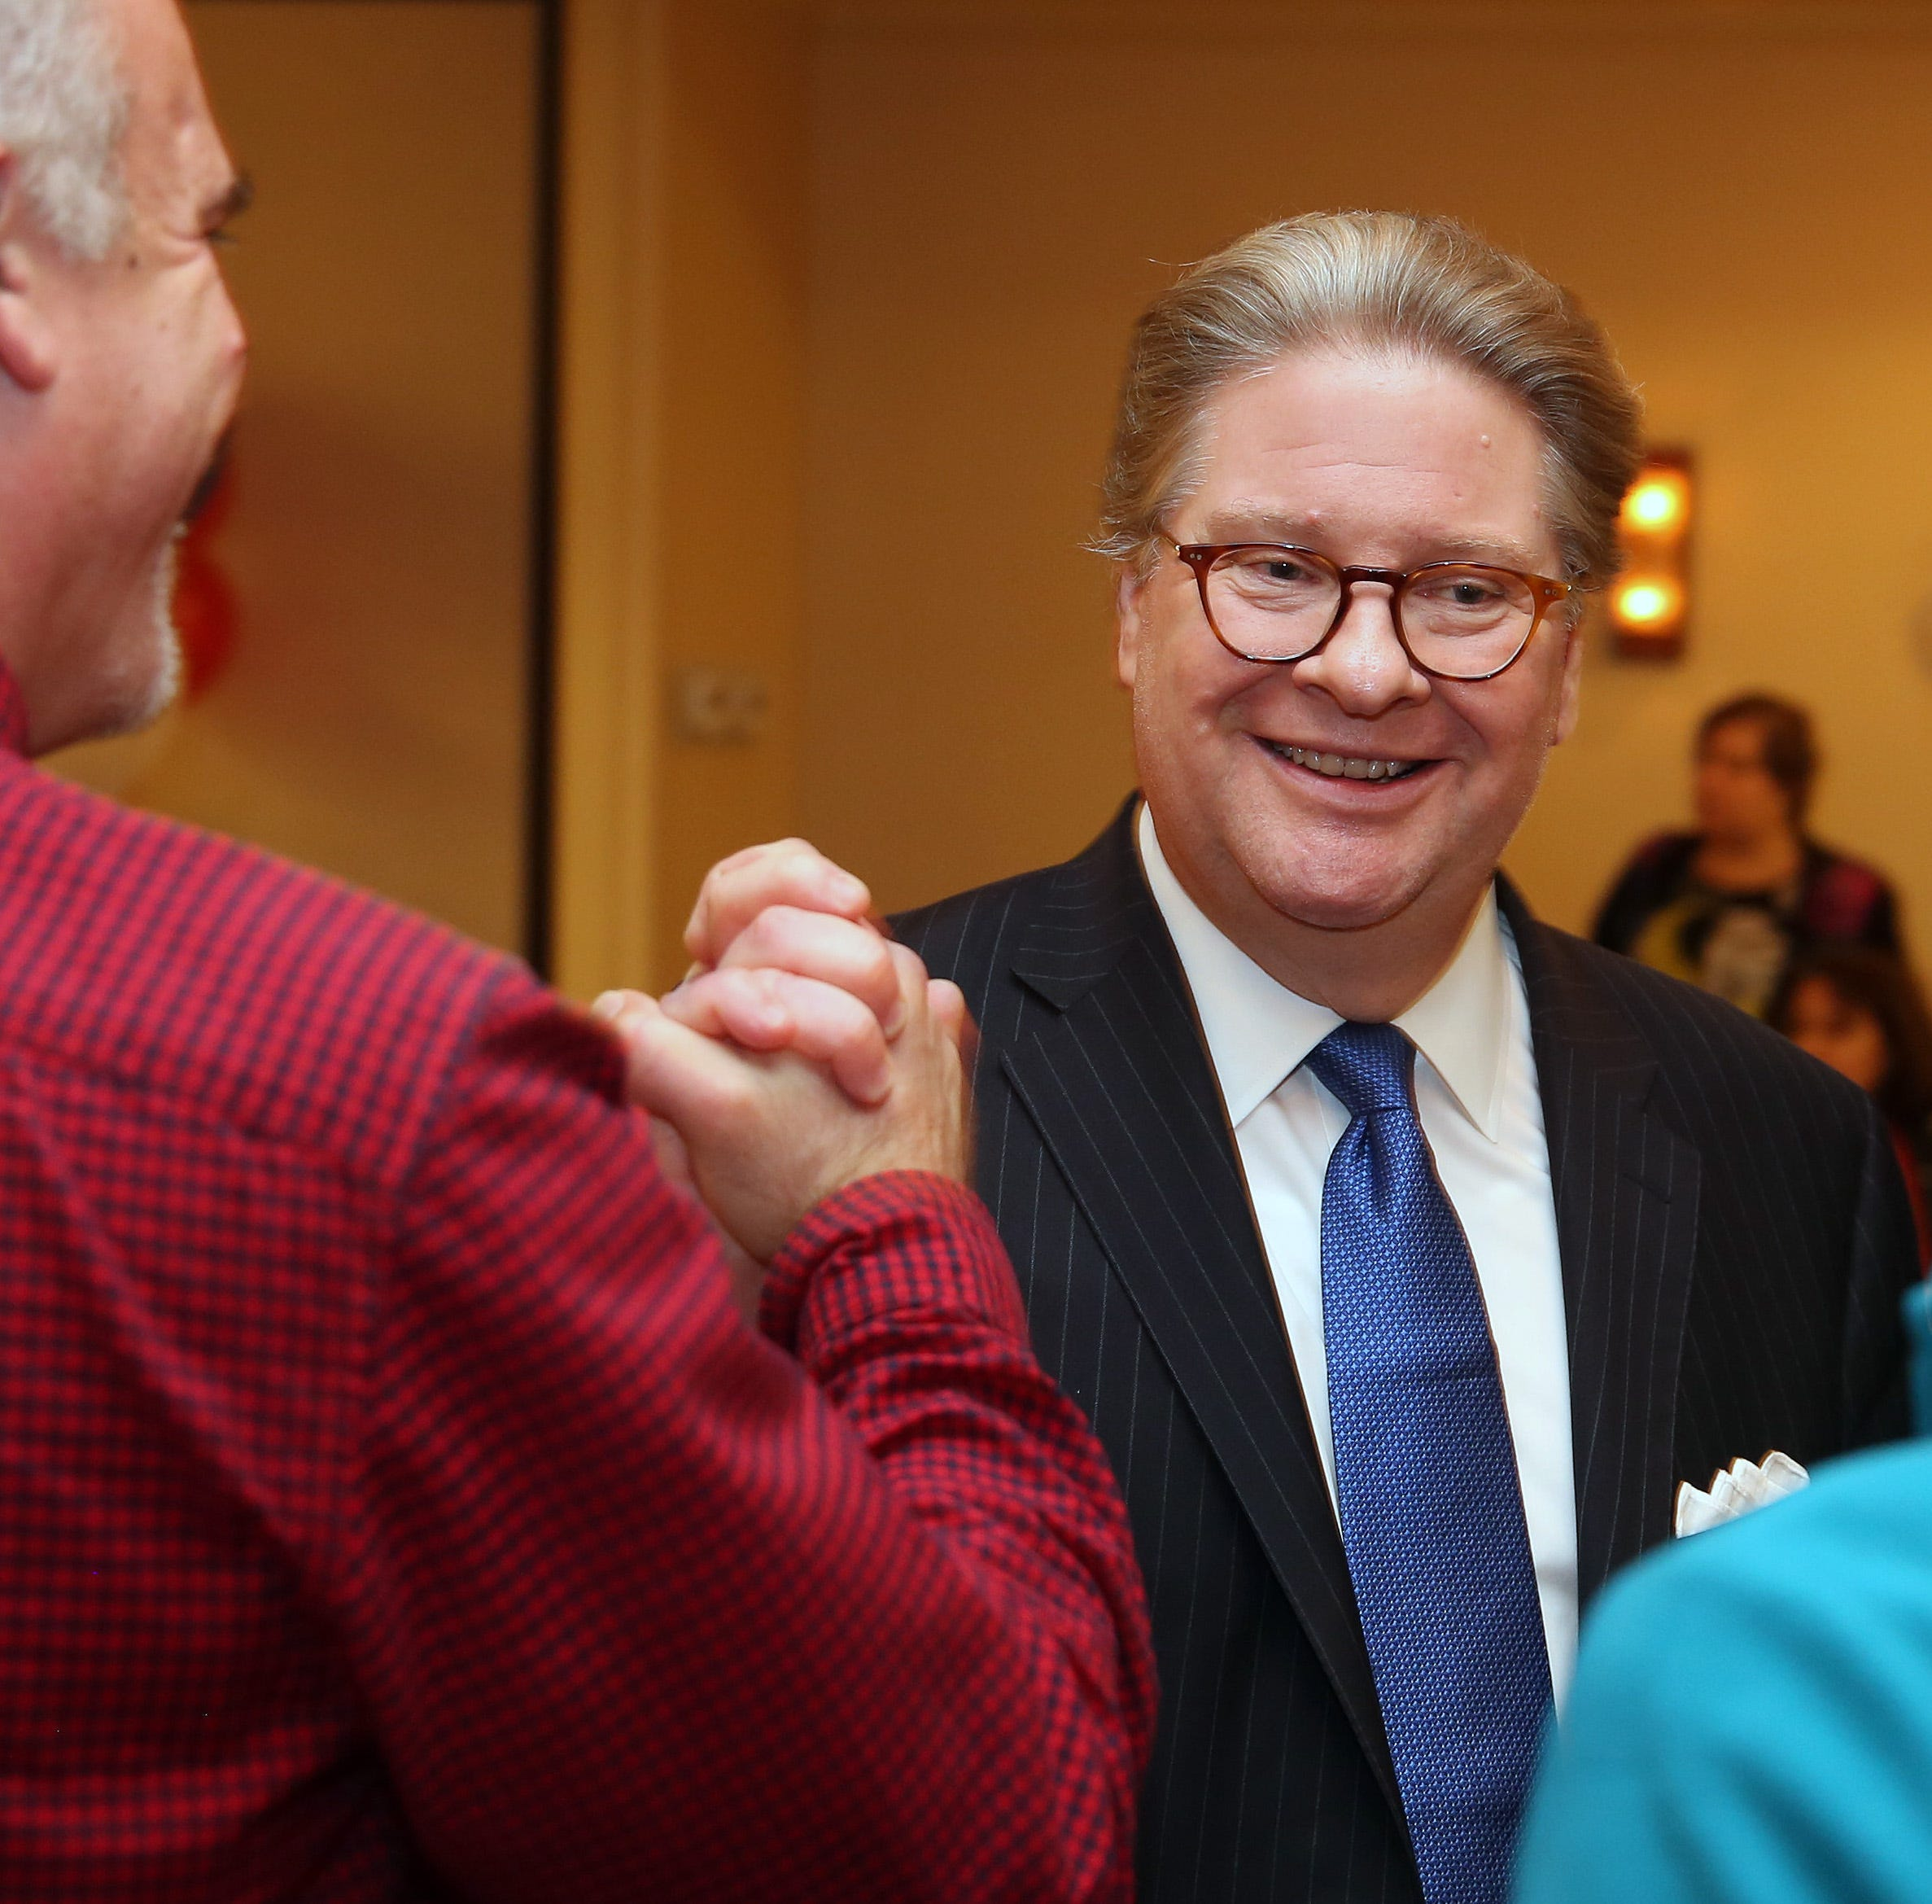 Pete Harckham is greeted by supporters after defeating SenatorTerrence Murphy in the state senate race at the Mount Kisco Holiday Inn Nov. 6,  2018.